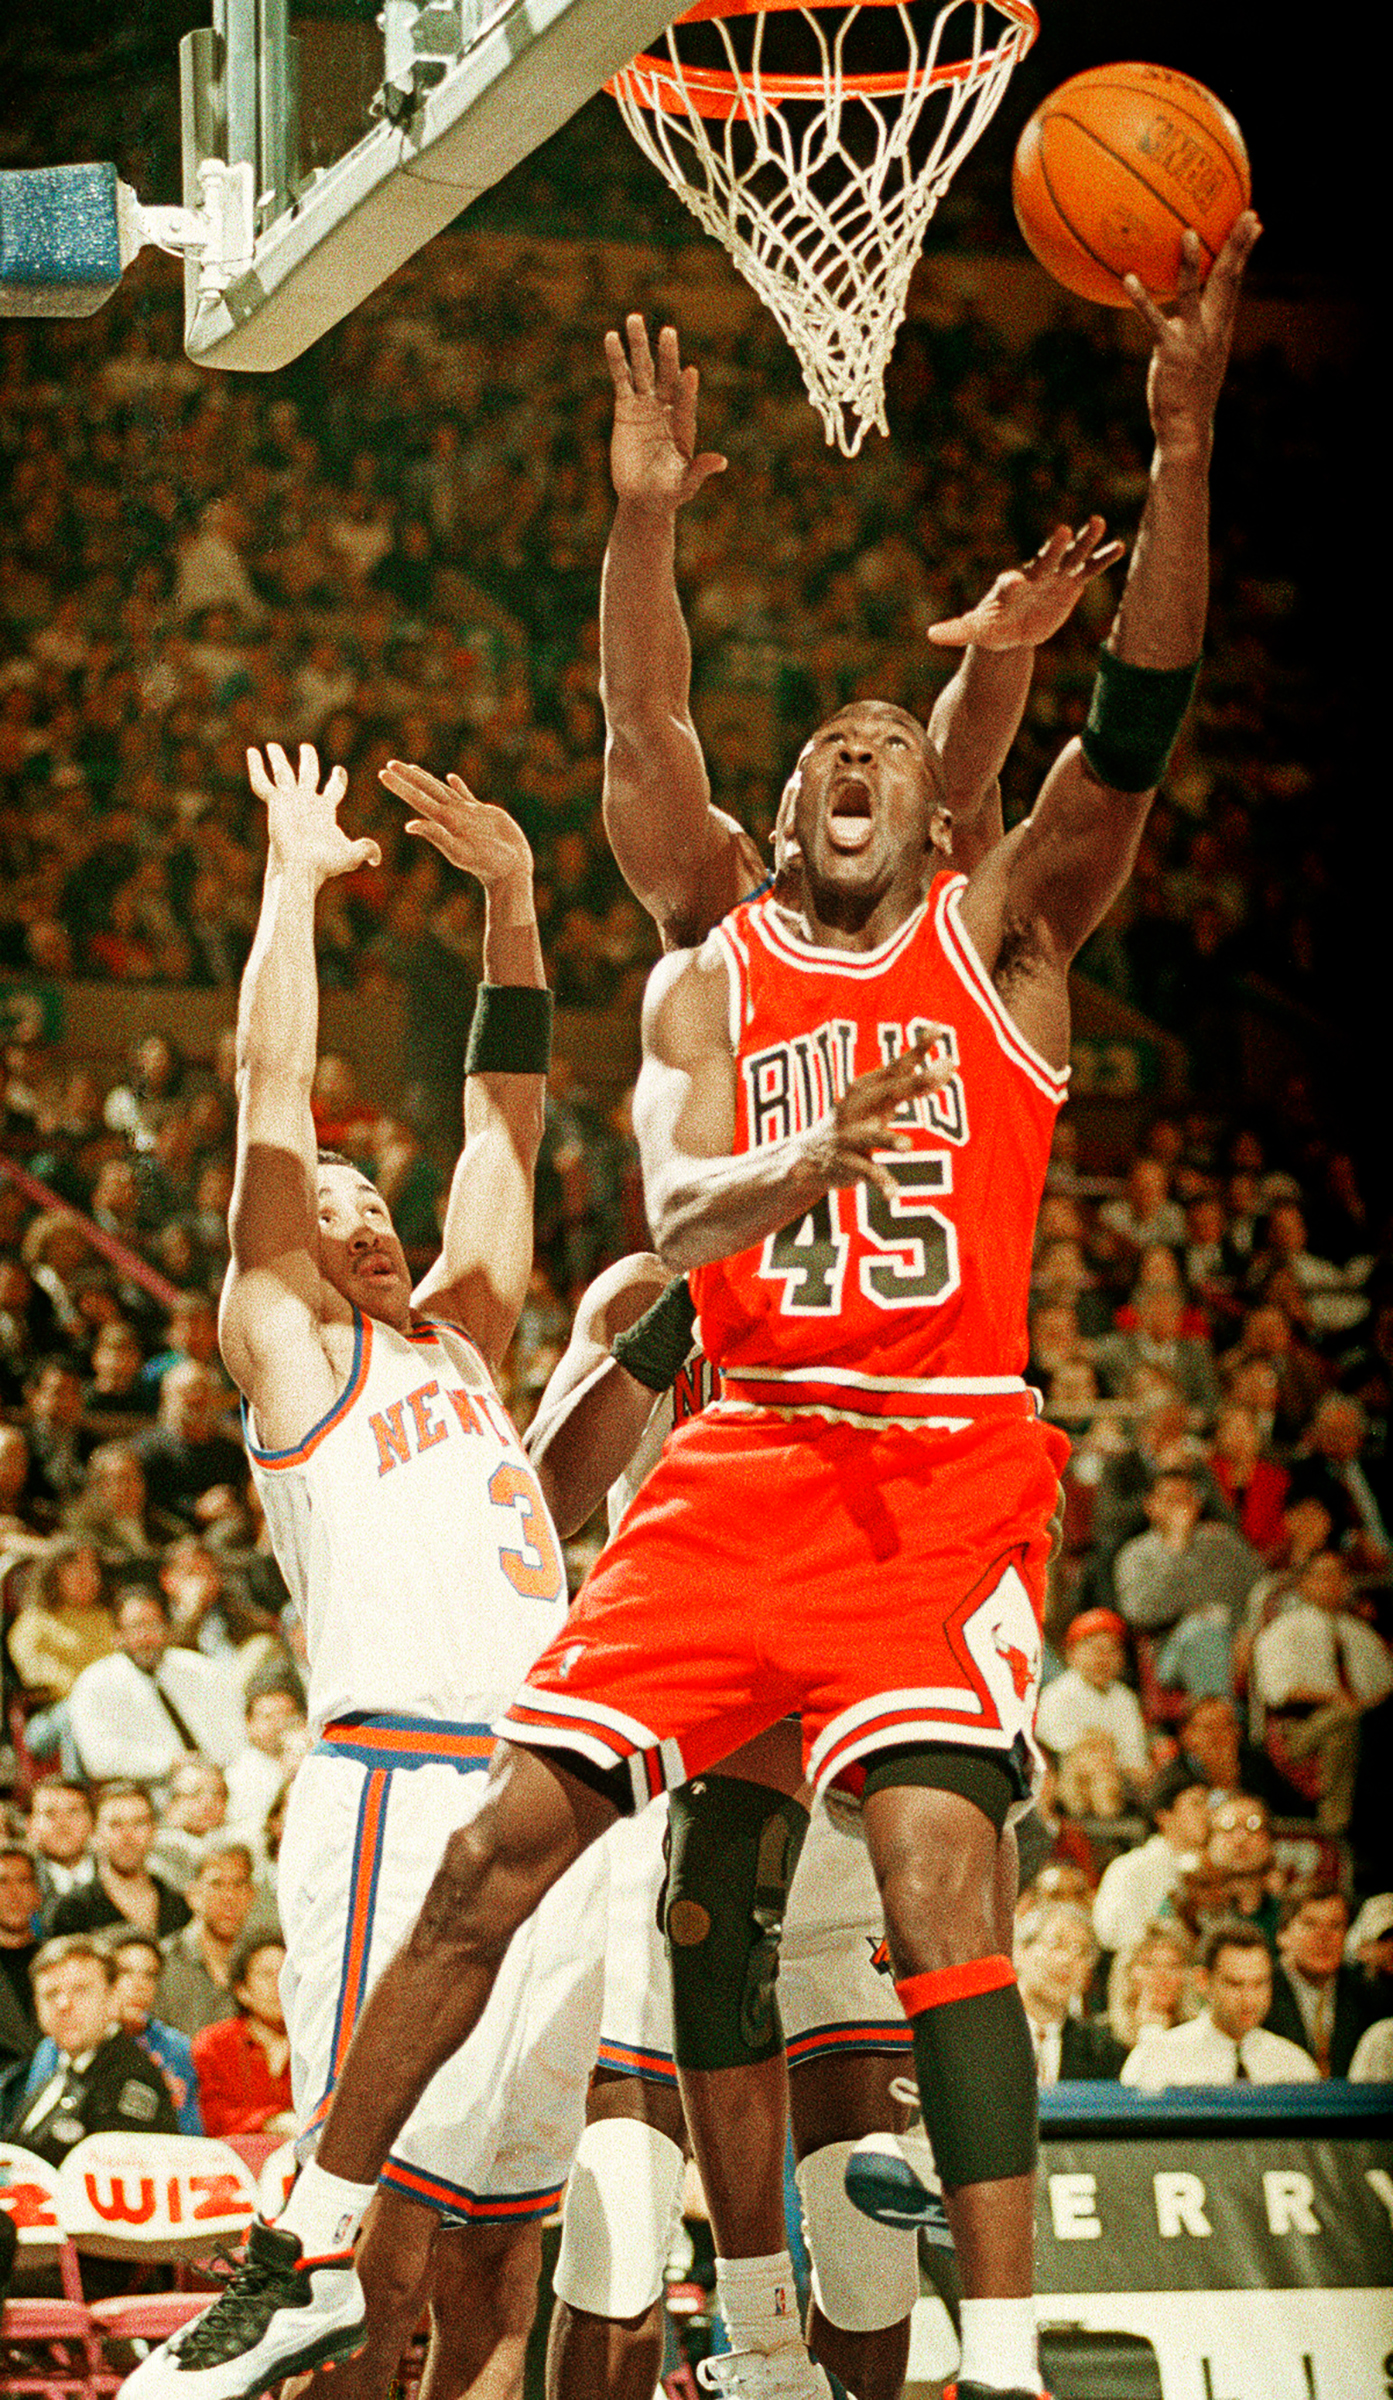 Michael Jordan scores 55 points vs. New York, while wearing No. 45, upon returning to the NBA in 1995.